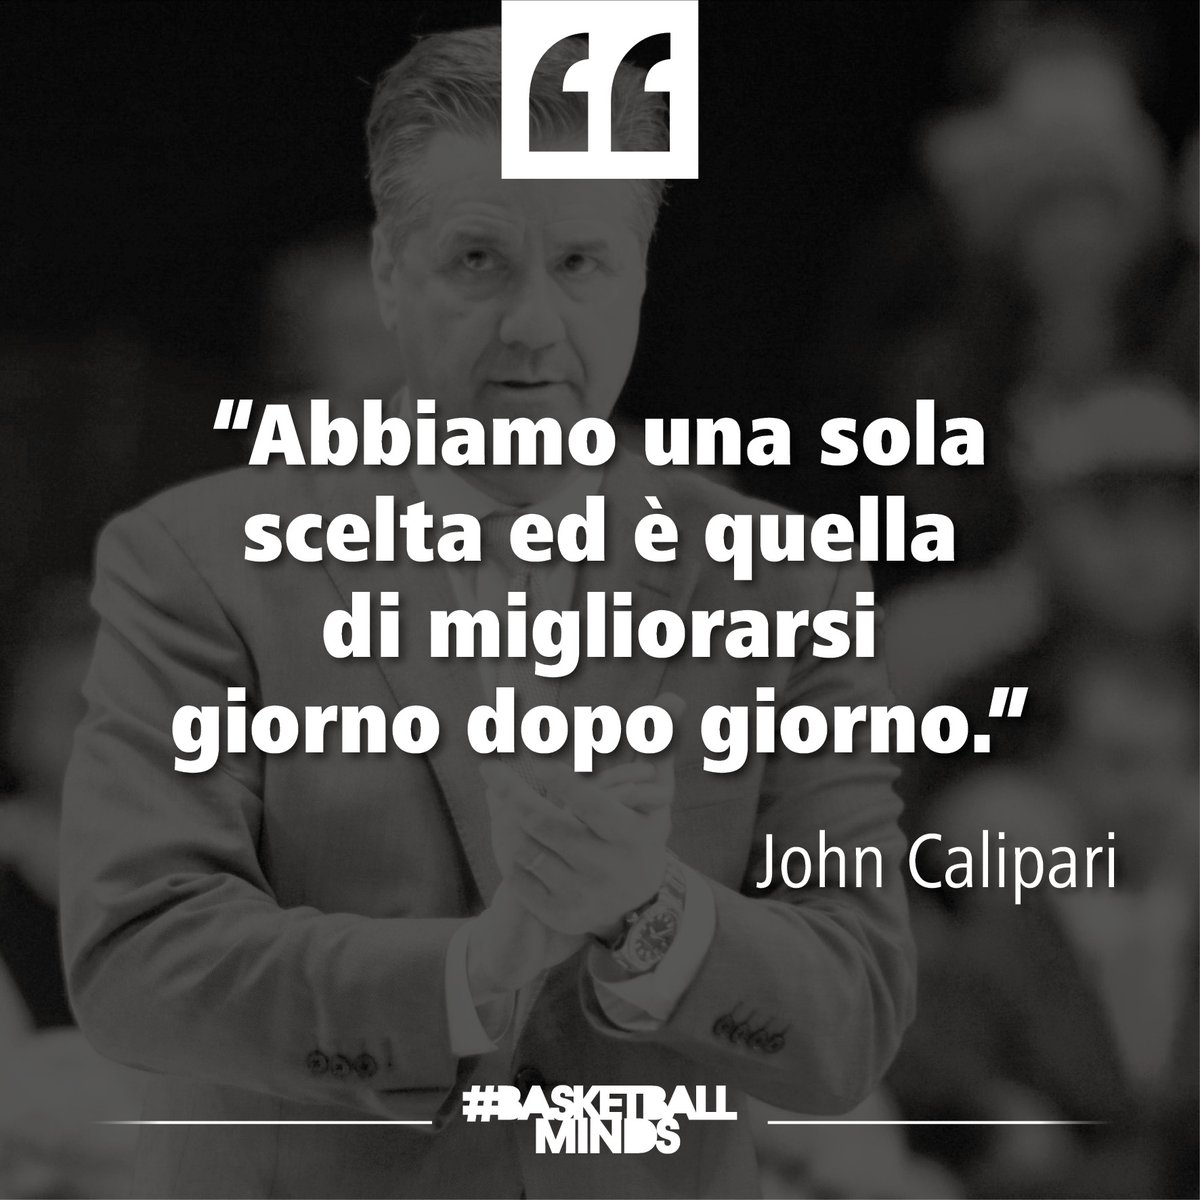 Una sola scelta!  #WednesdayQuotes #BasketballQuotes #JohnCalipari https://t.co/JHUixeNXWA